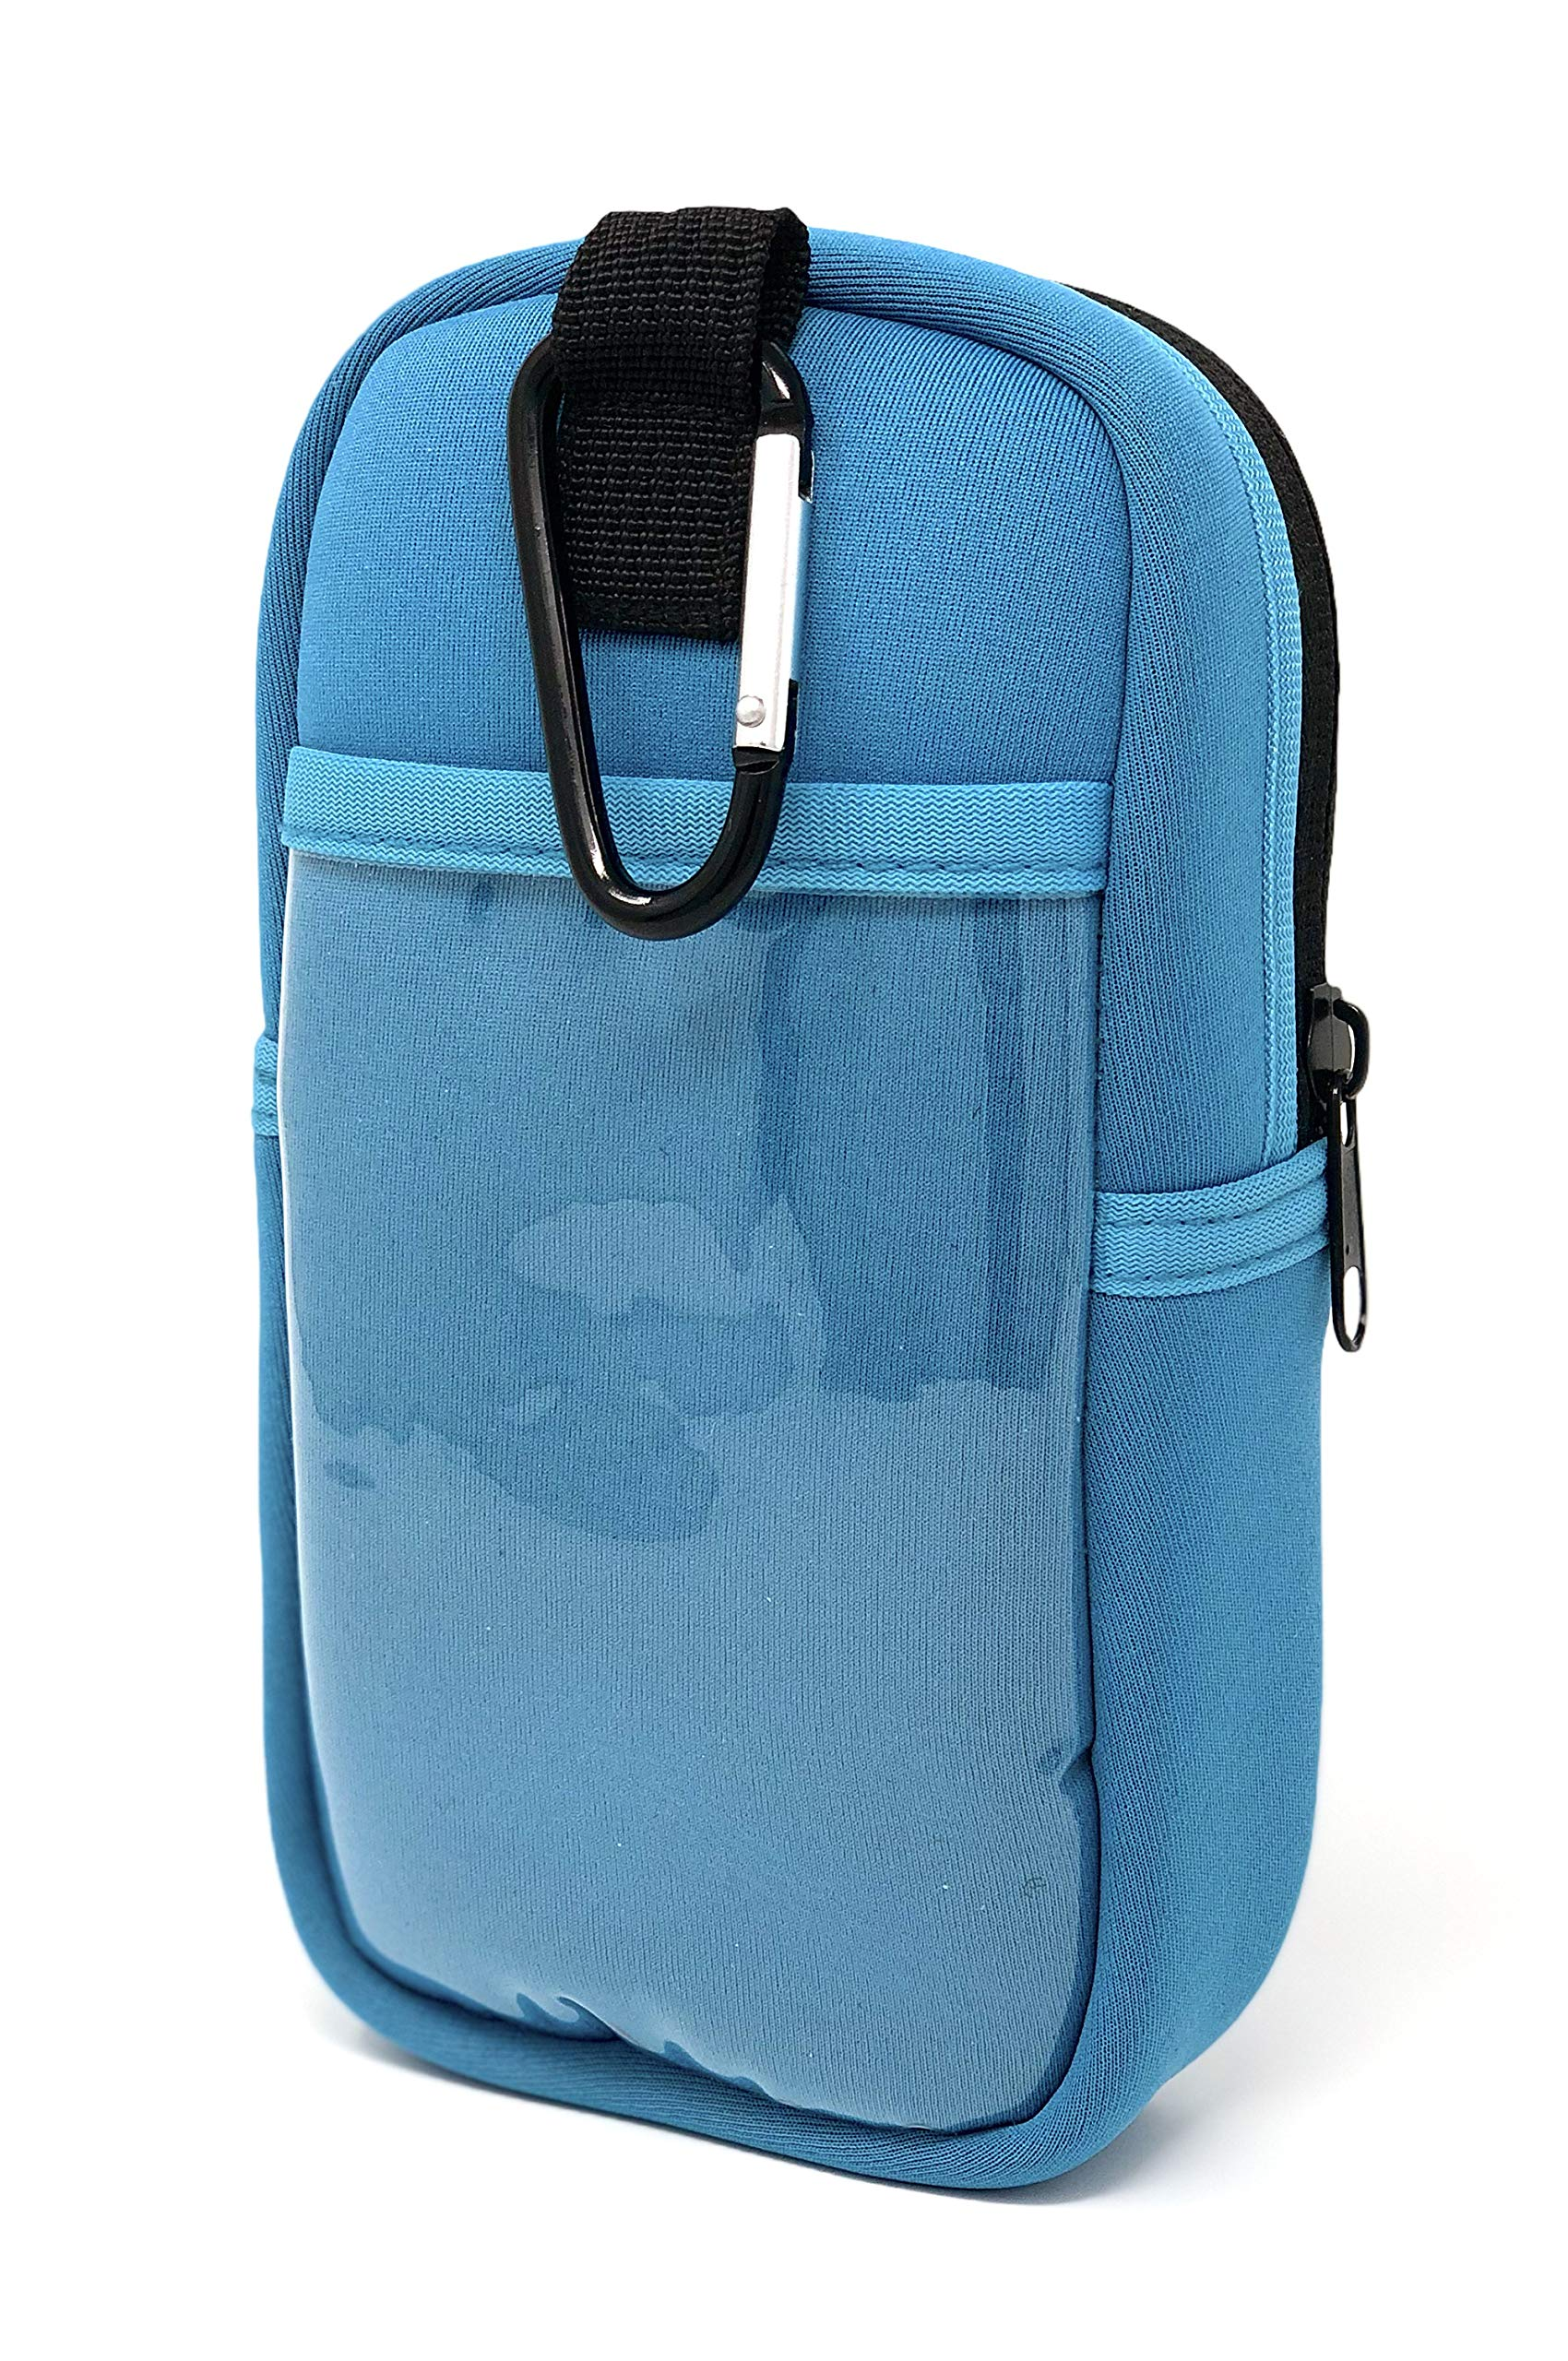 EPI-TEMP Epipen Insulated Case for Kids, Adults - Smart Carrying Pouch, Storage Bag, Powered by PureTemp Phase Change Material to Keep Epinephrine in Safe Temperature Range (Teal) by EPI-TEMP (Image #2)